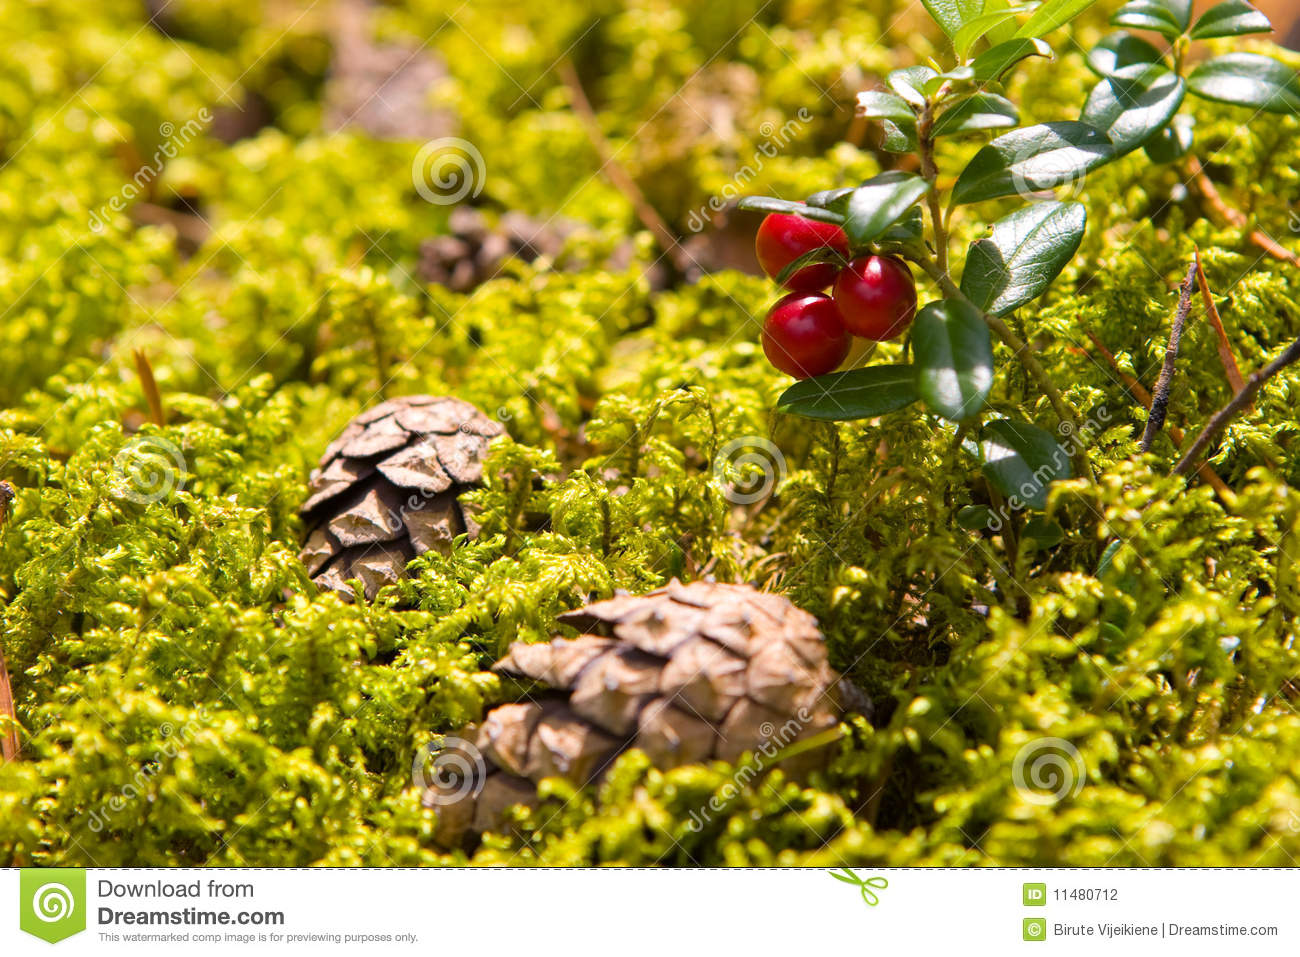 Lingonberry (Vaccinium vitis-idaea) and two cones on the forest floor.